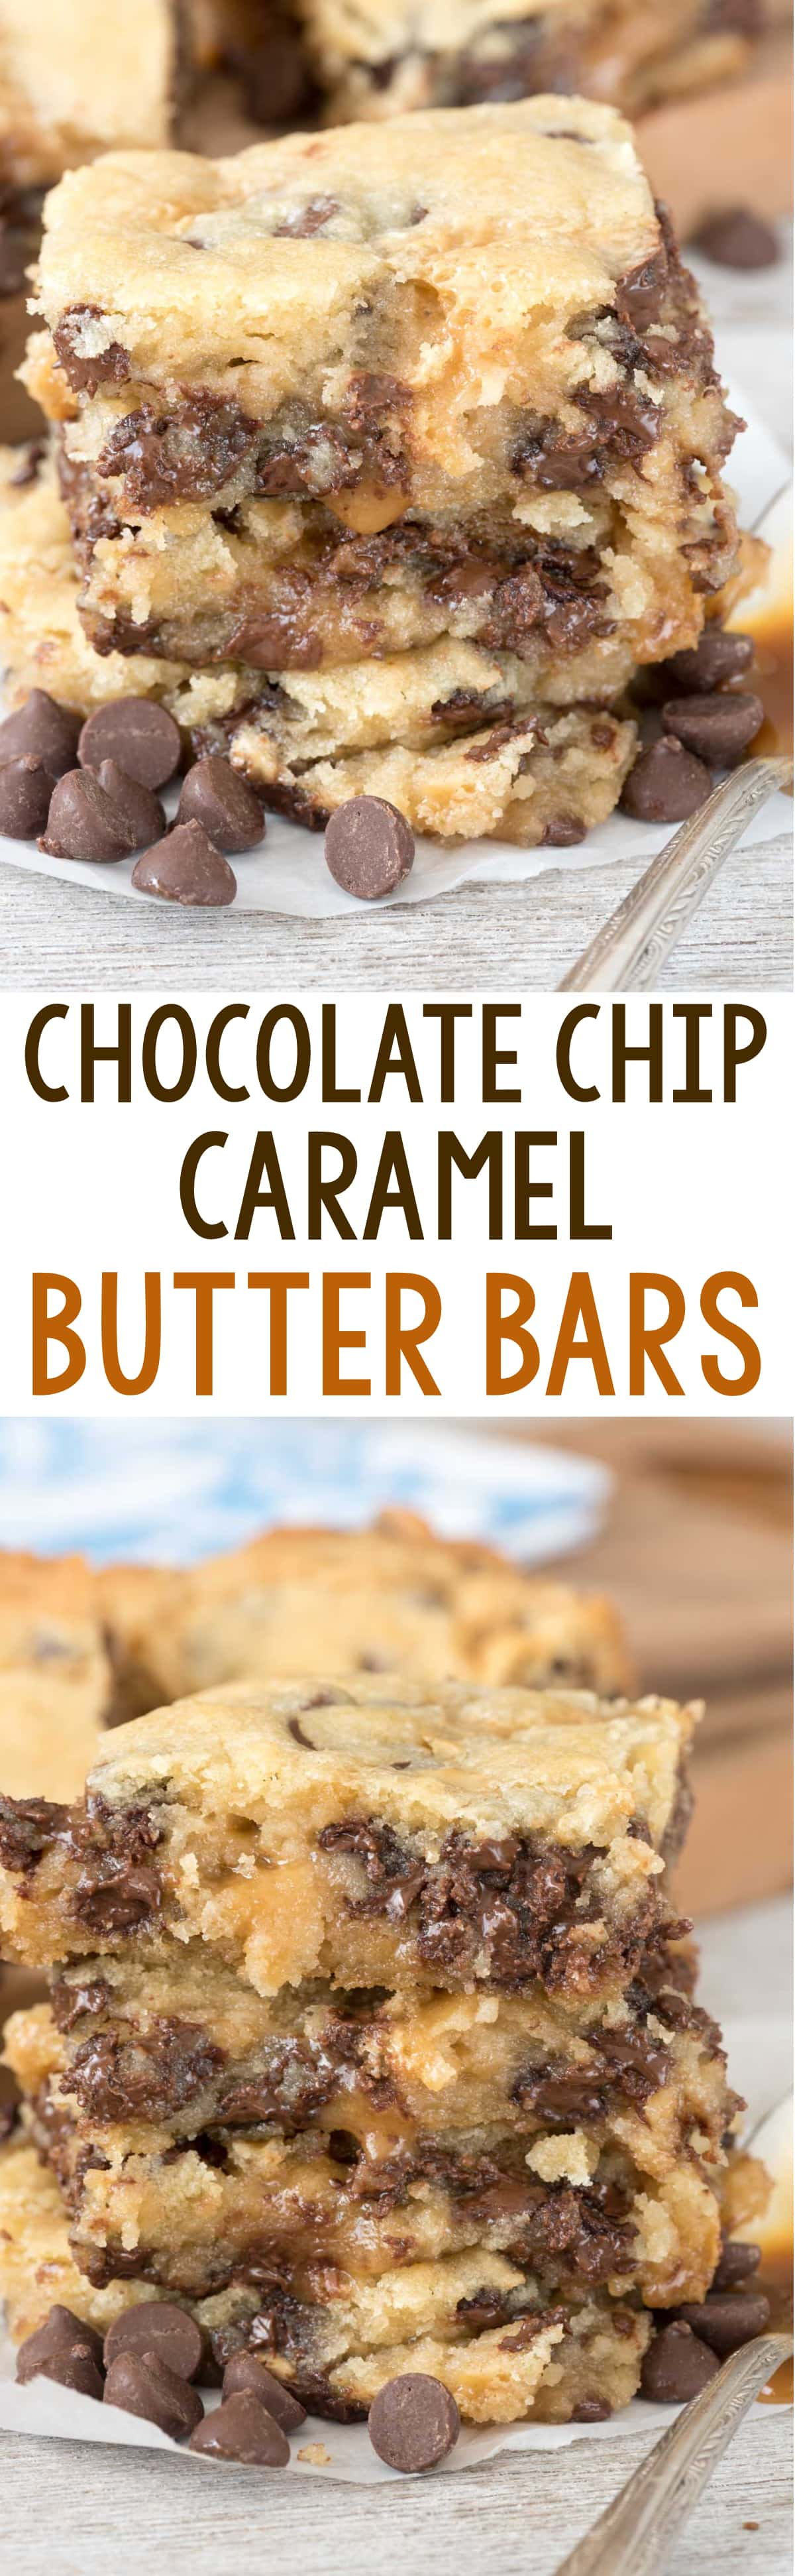 Chocolate Chip Caramel Butter Bars - Crazy for Crust